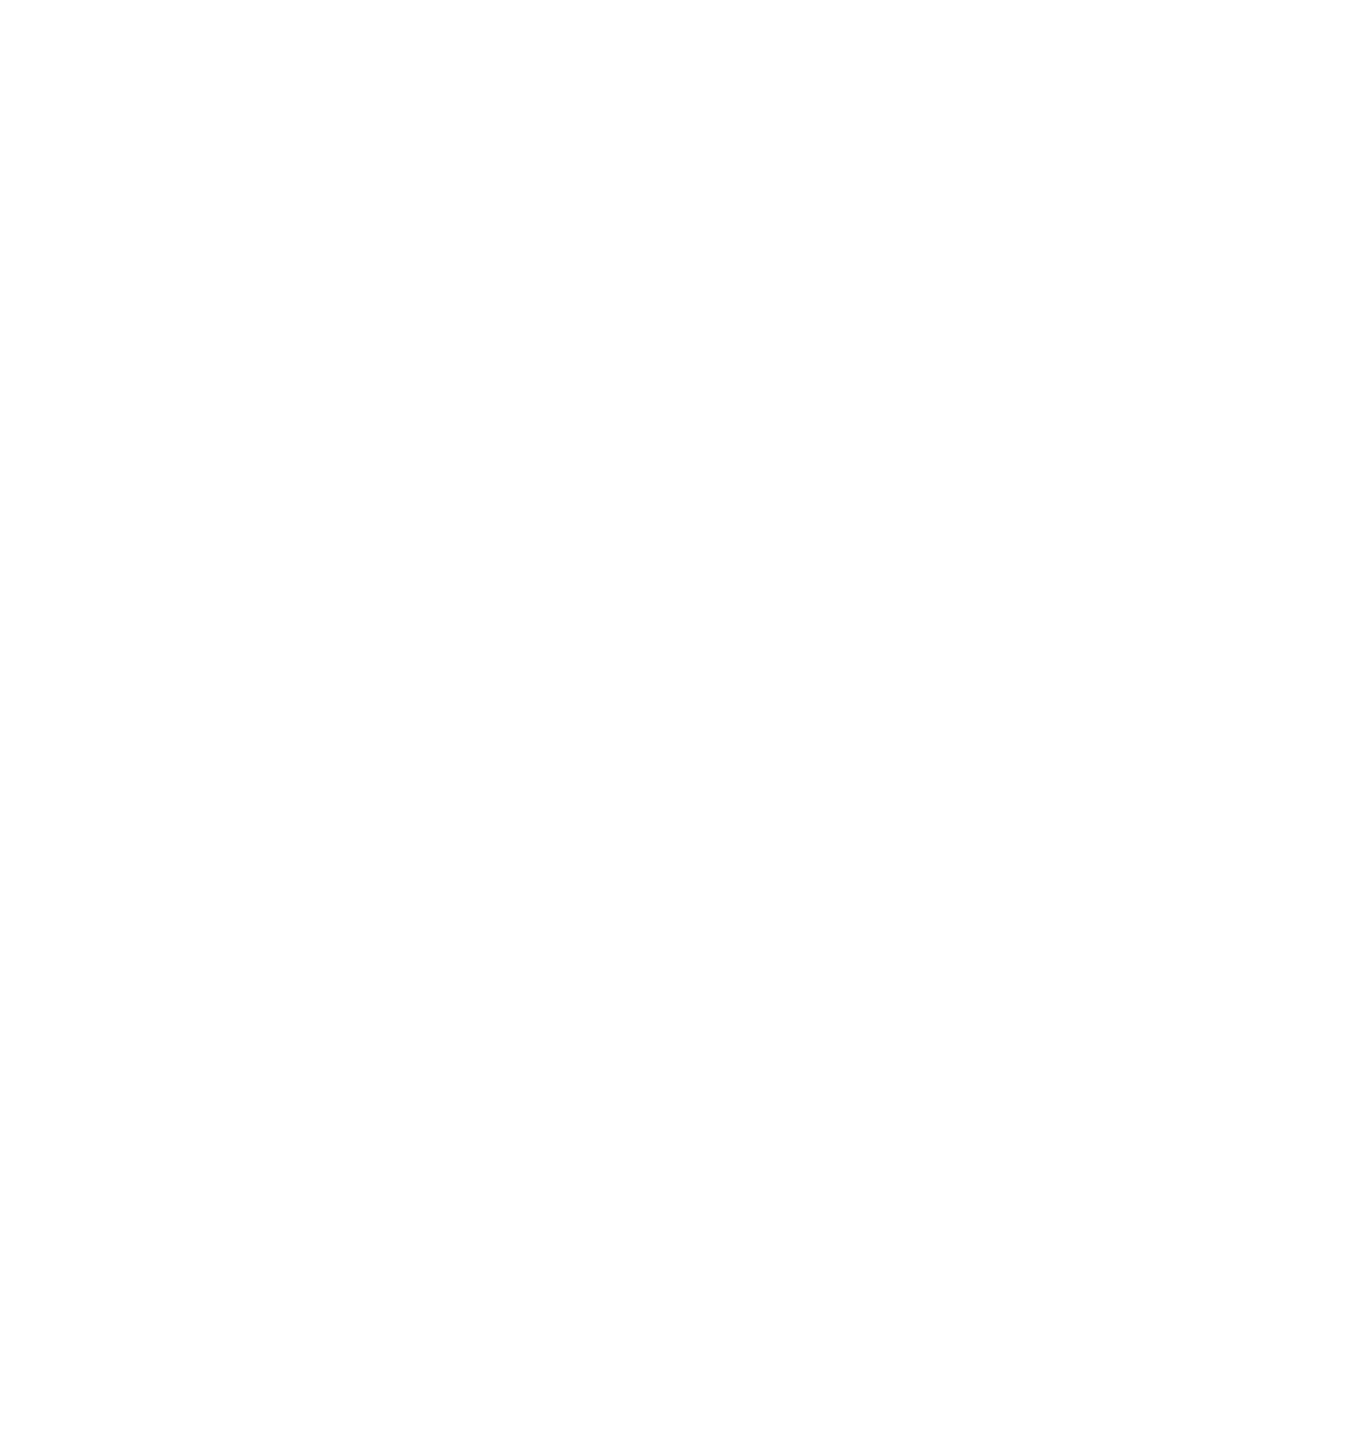 2021 SPRING/SUMMER KEY OUTFITS